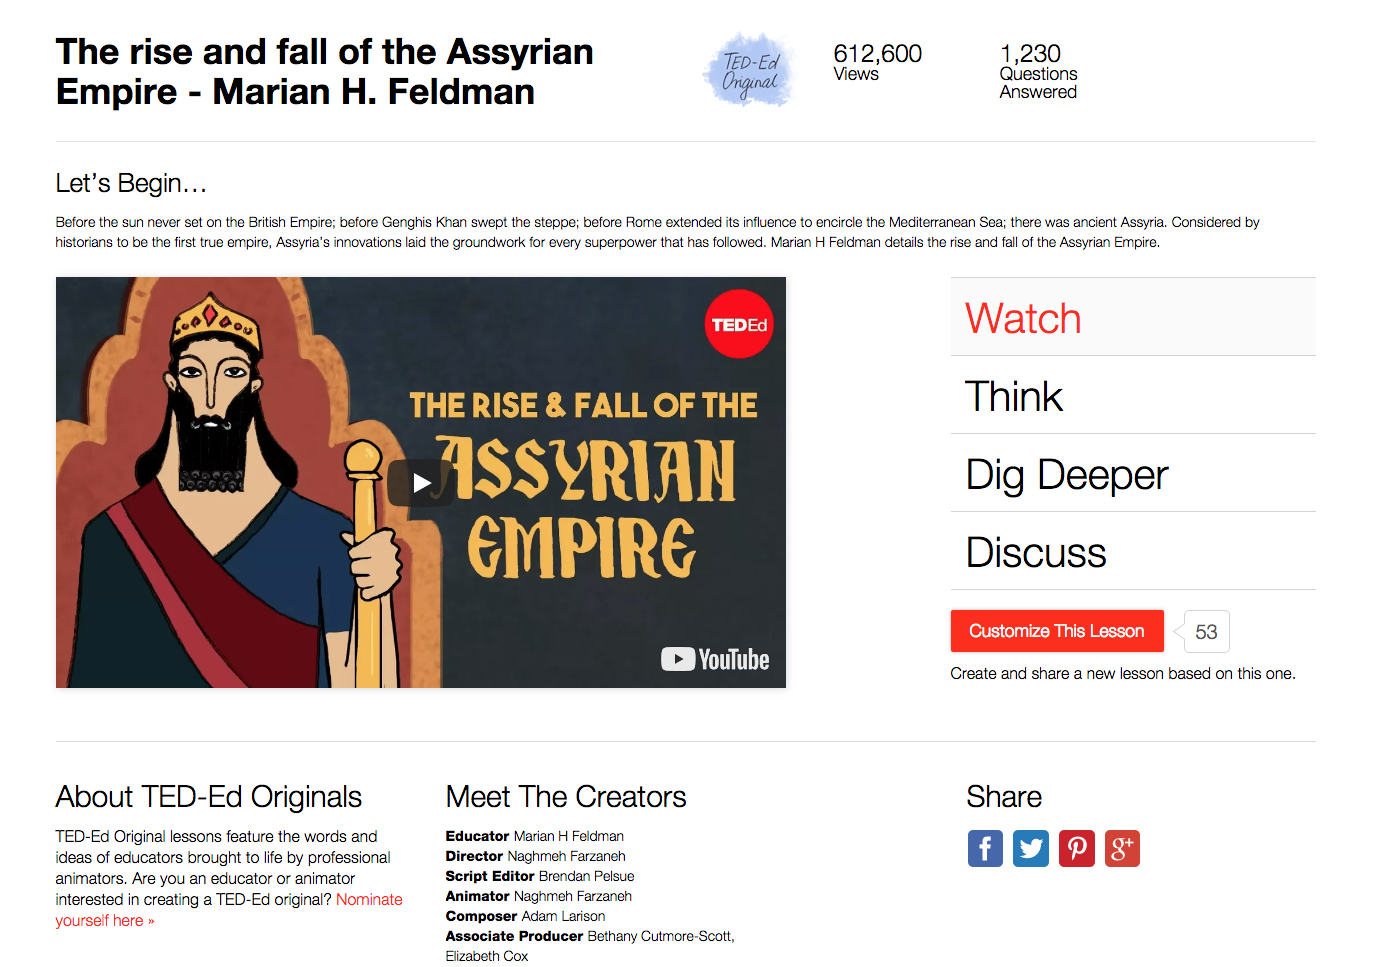 The Rise and Fall of the Assyrian Empire Video